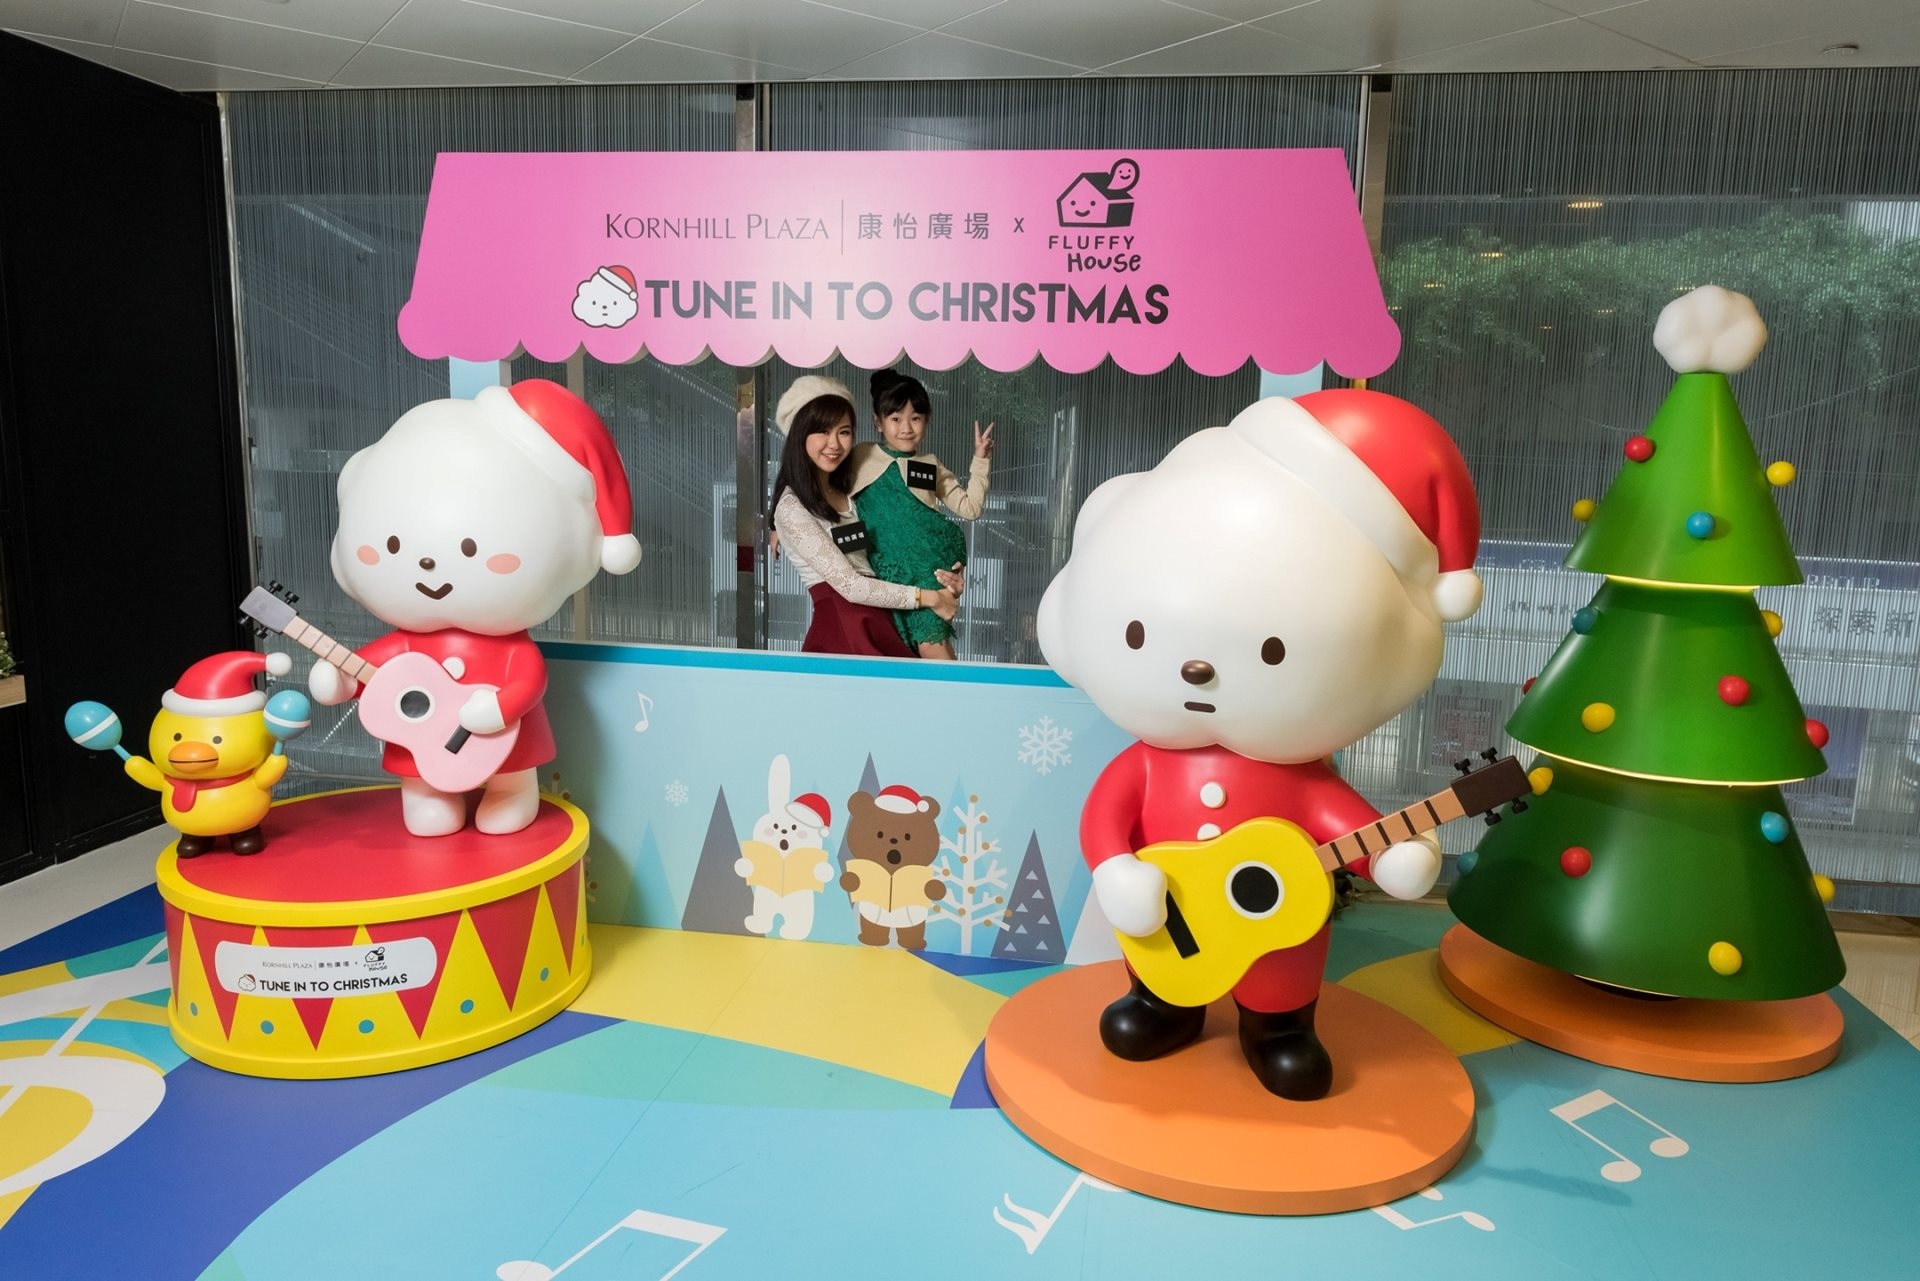 FLUFFY HOUSE Cartoon Characters Visit Kornhill Plaza and </br> The Peak Galleria to Create Christmas Melodies